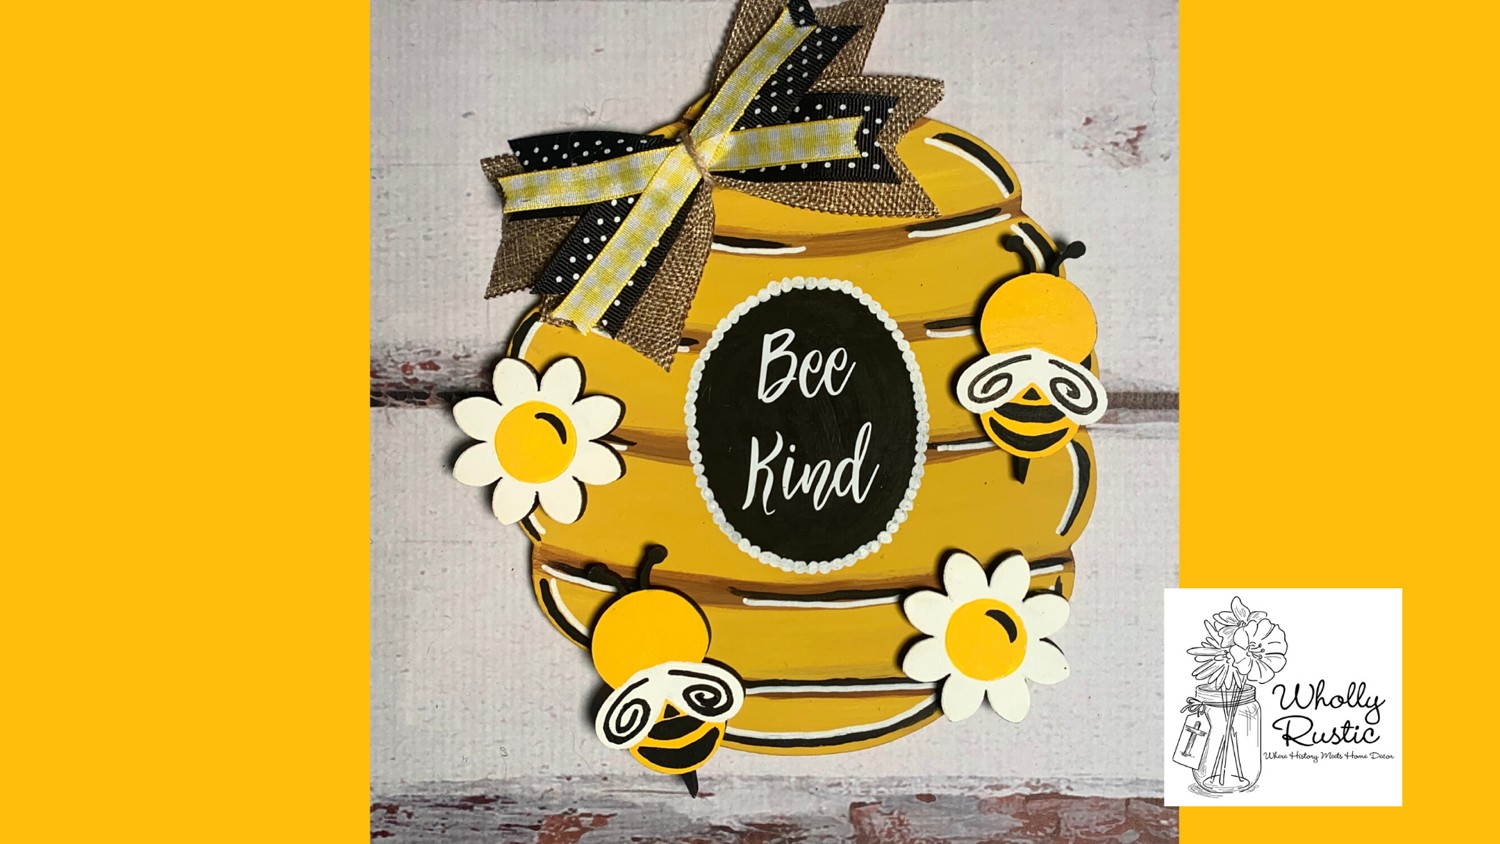 Bee Kind Door Hanger!